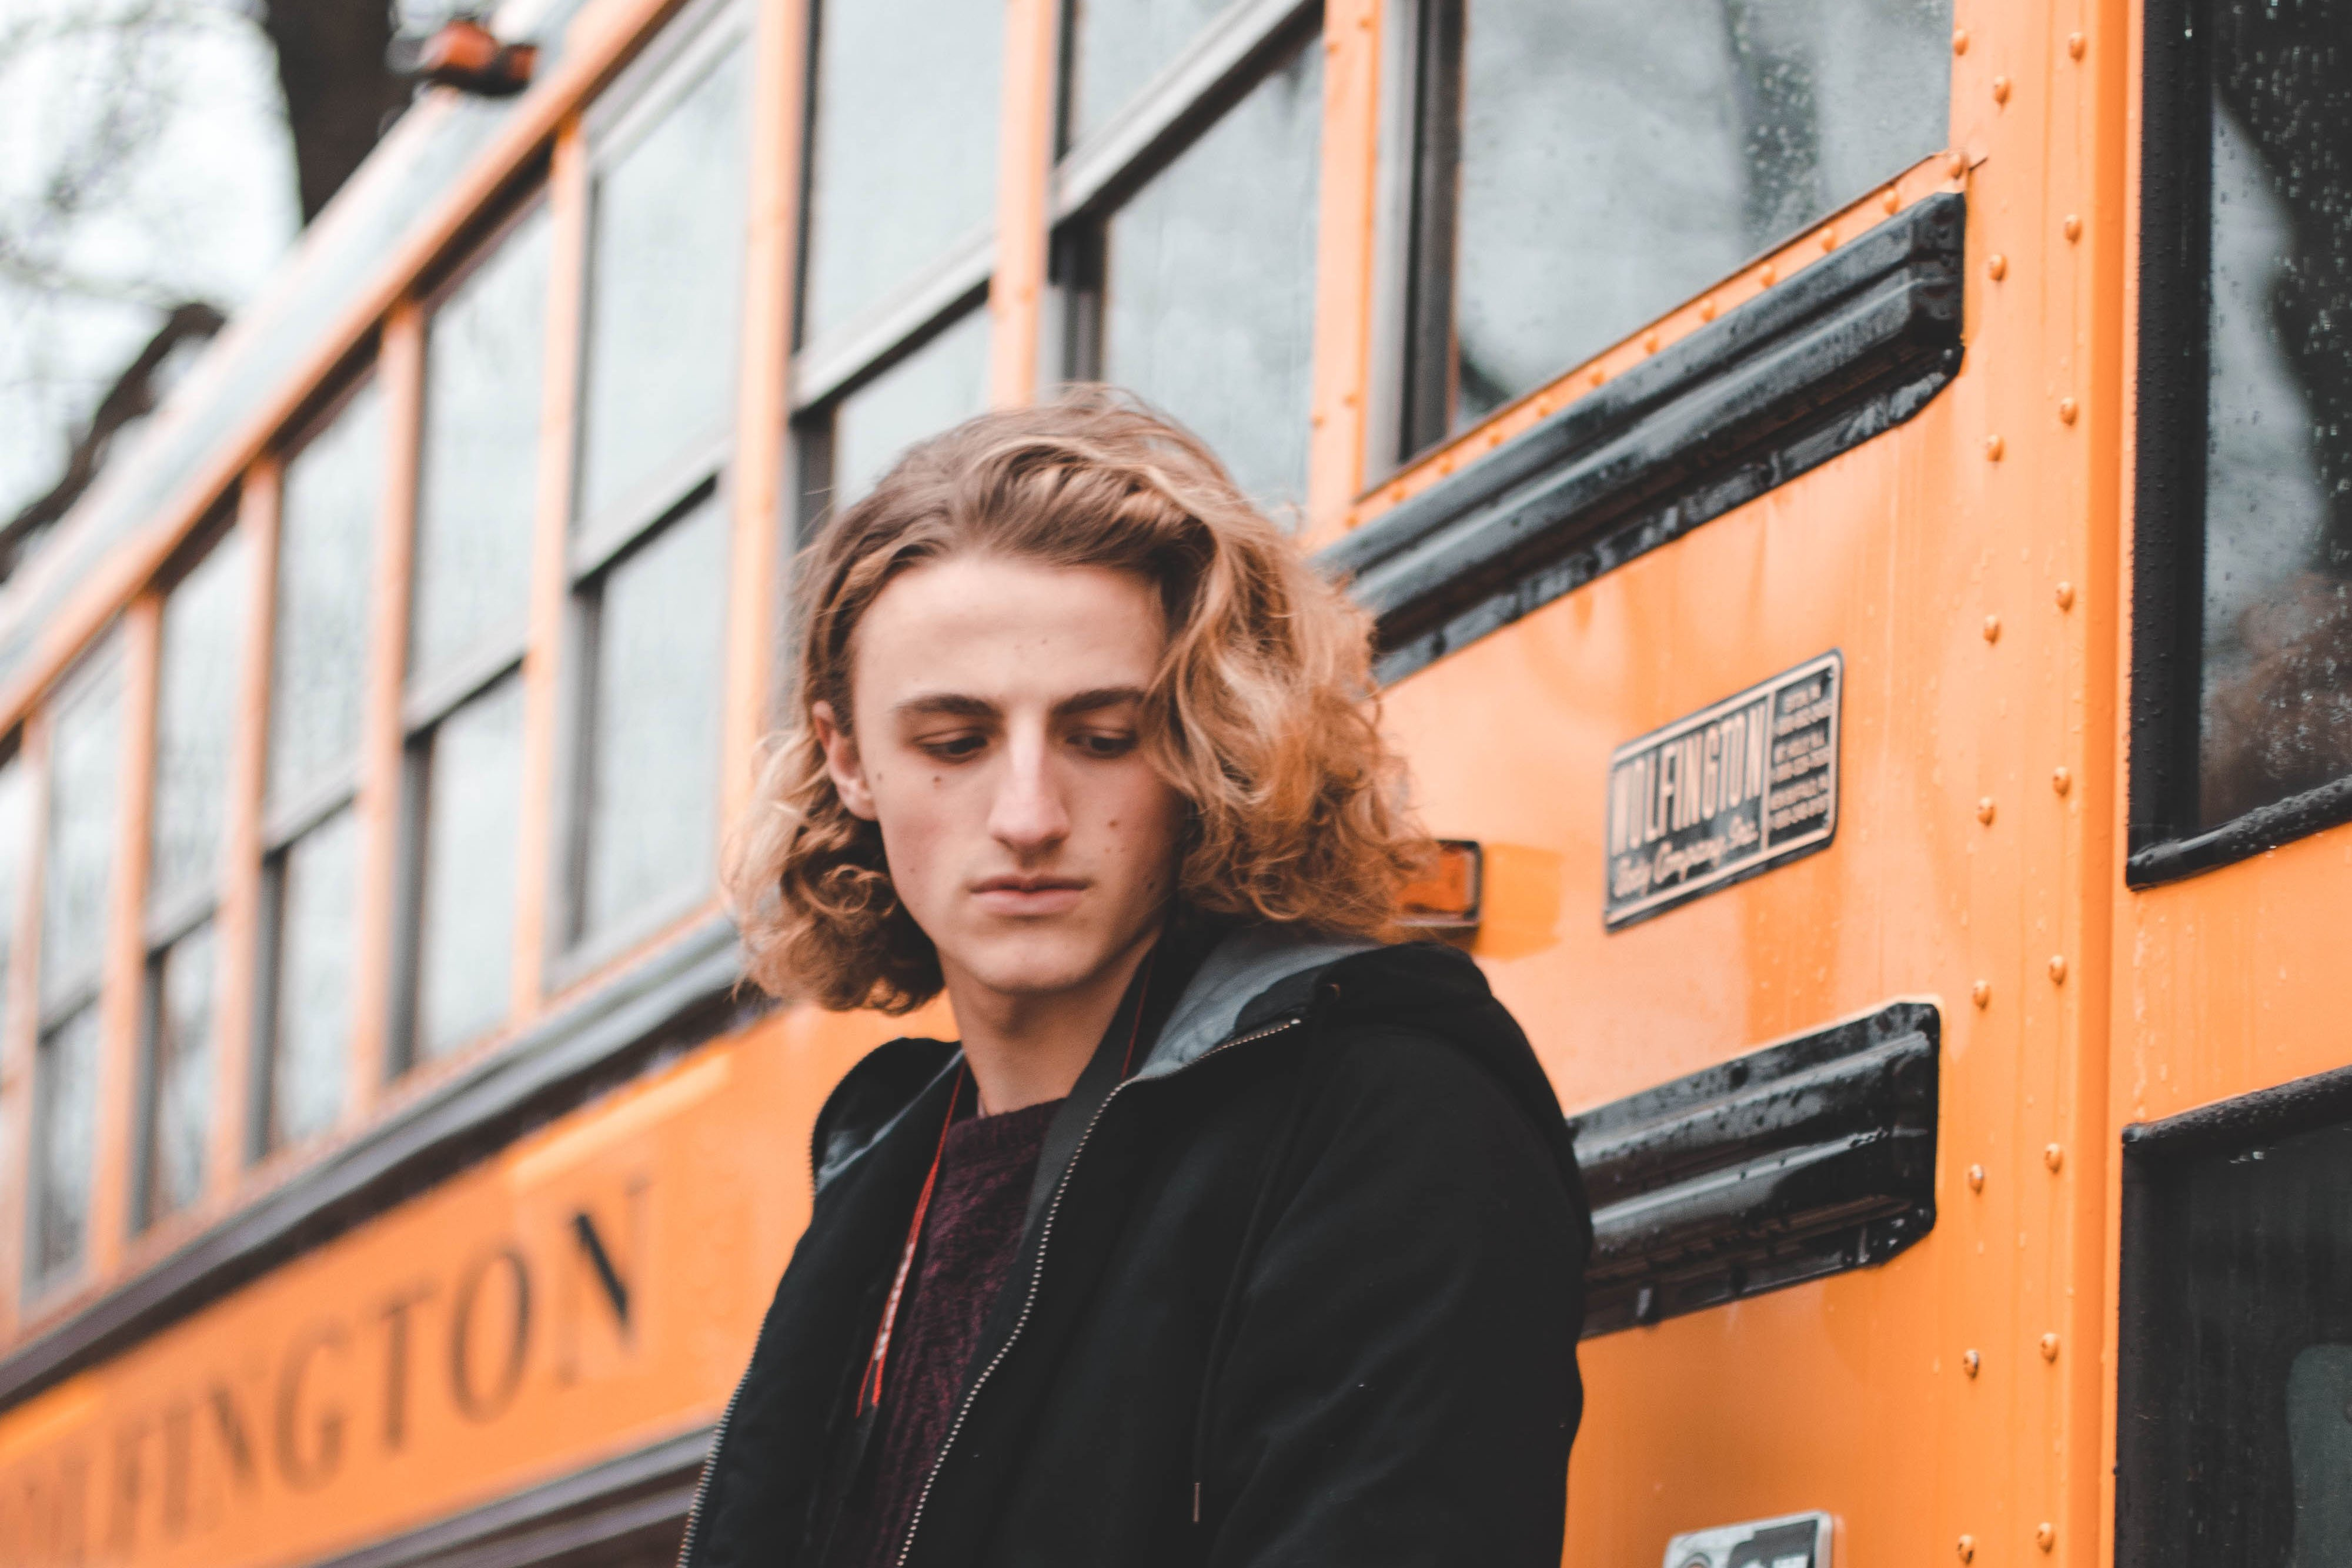 Person standing in front of school bus